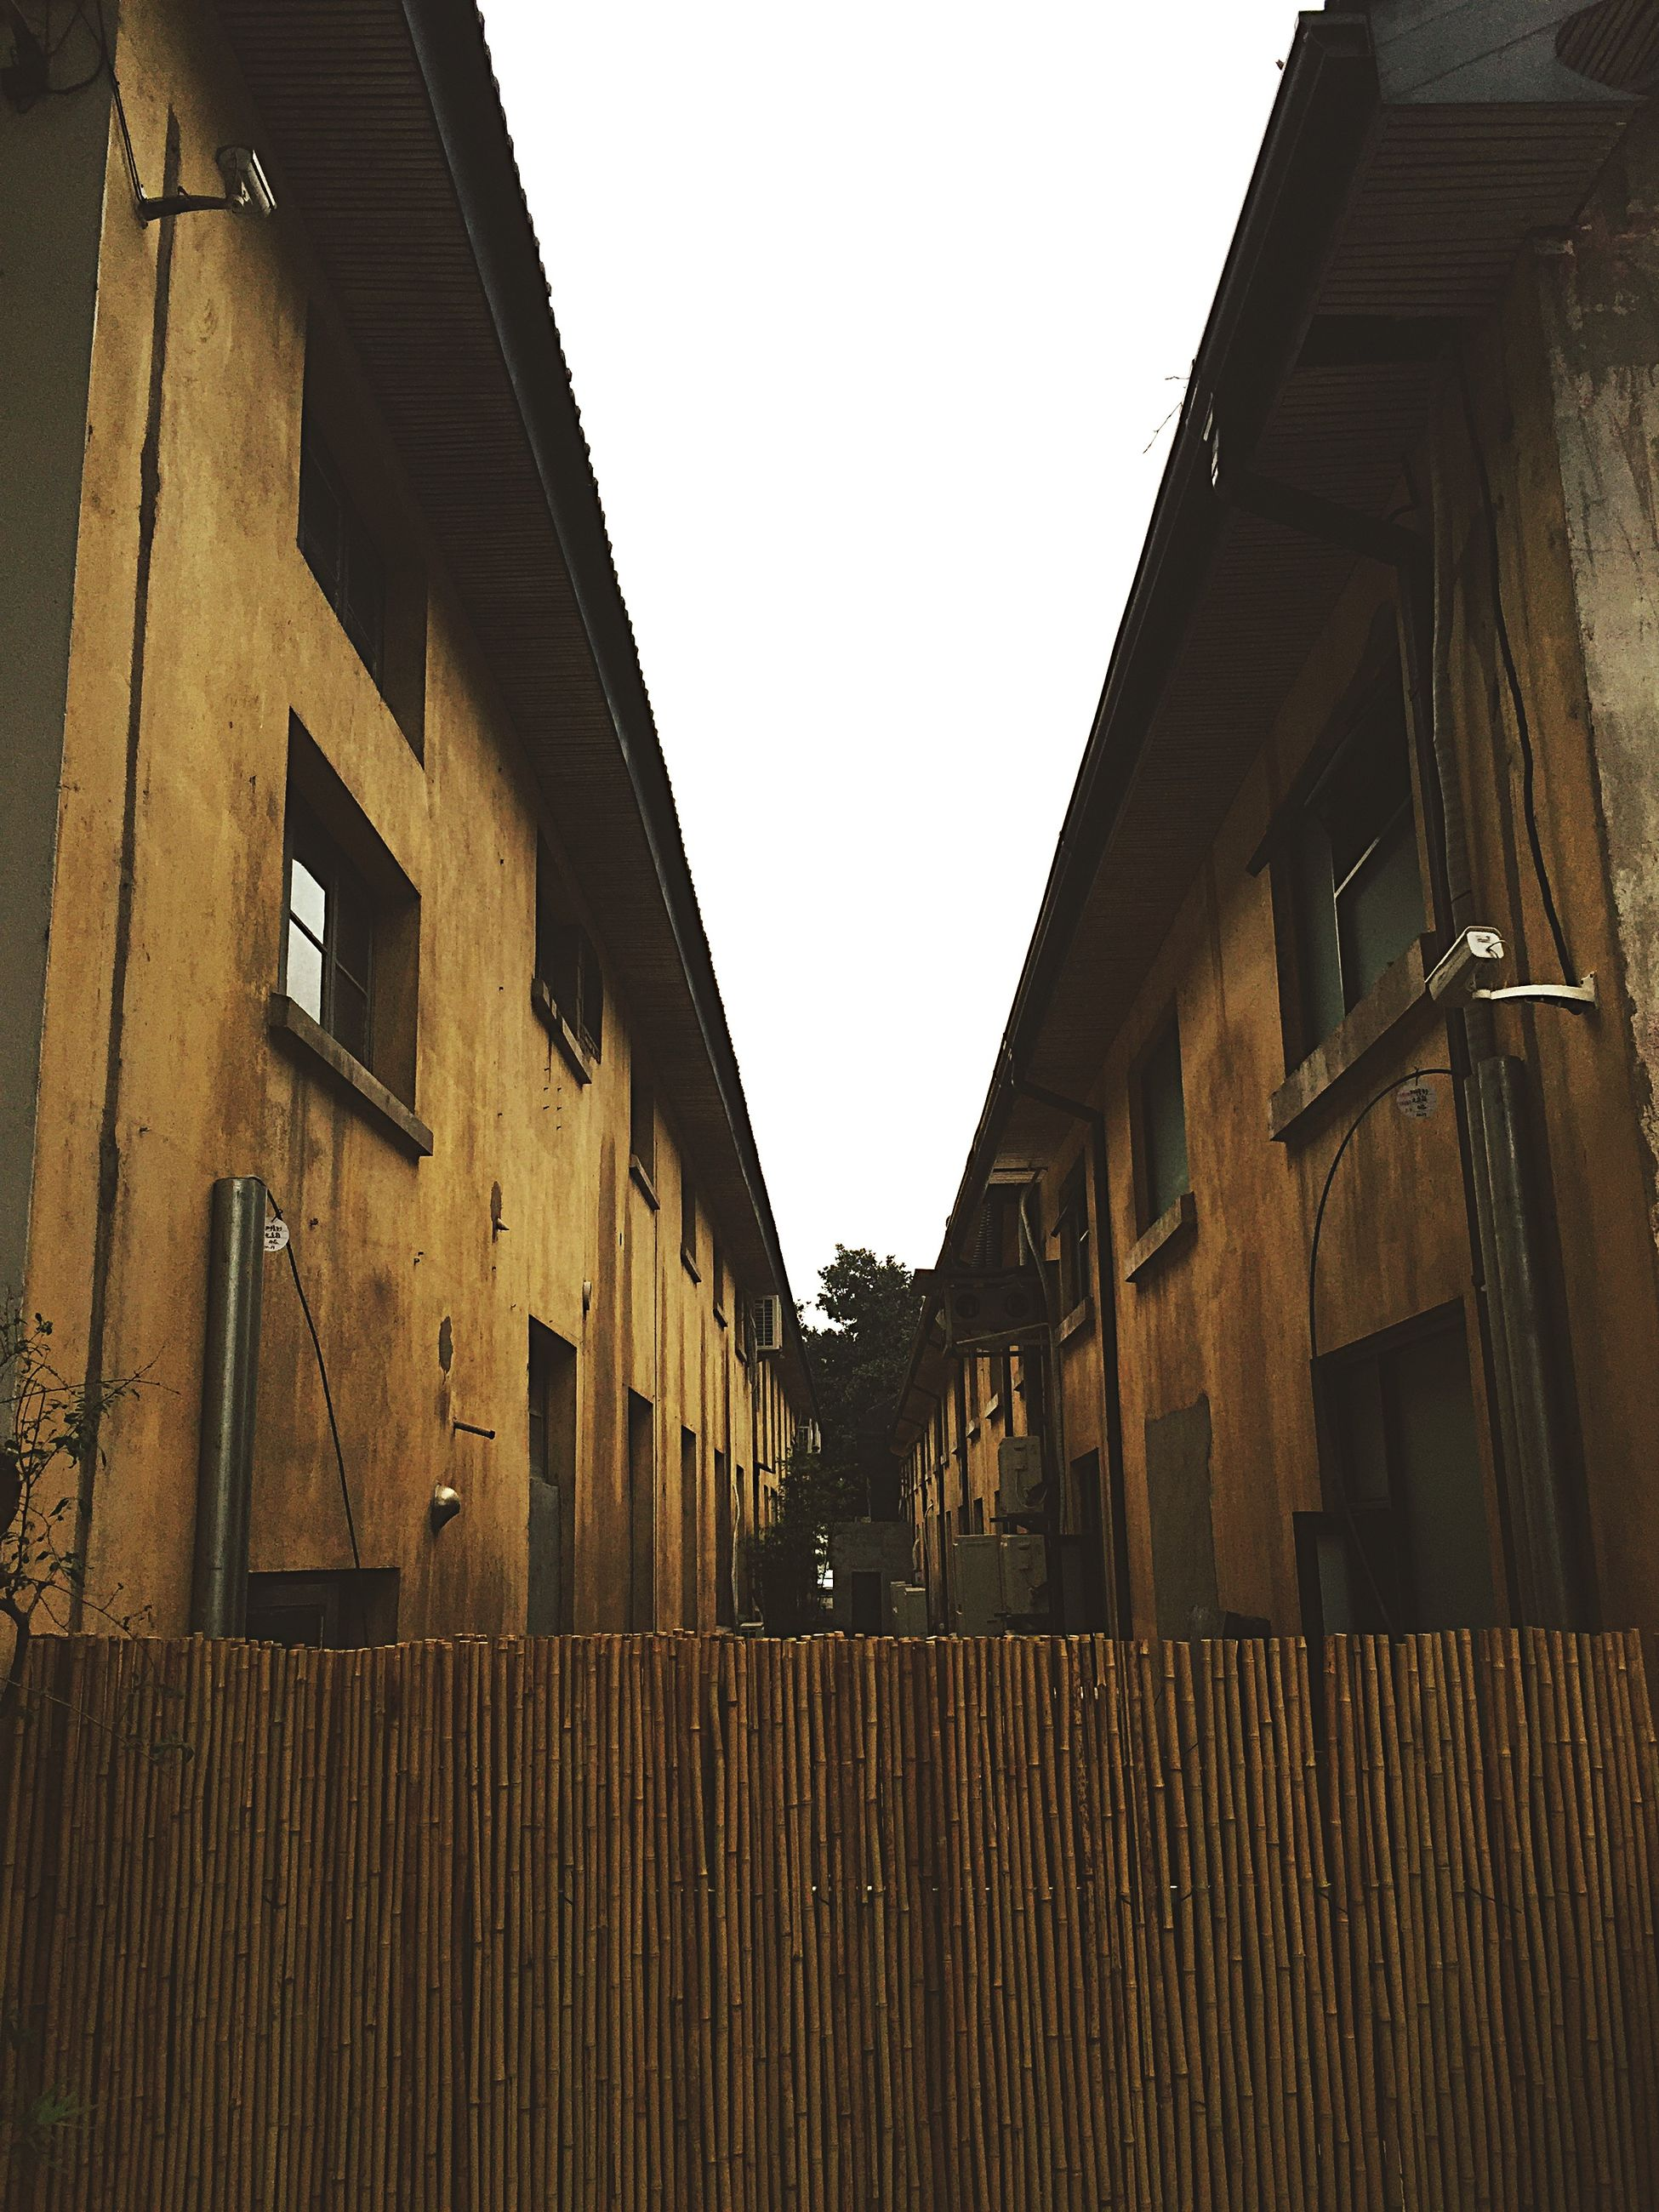 architecture, built structure, building exterior, clear sky, low angle view, residential building, building, residential structure, window, house, day, city, outdoors, no people, sky, old, sunlight, copy space, the way forward, diminishing perspective